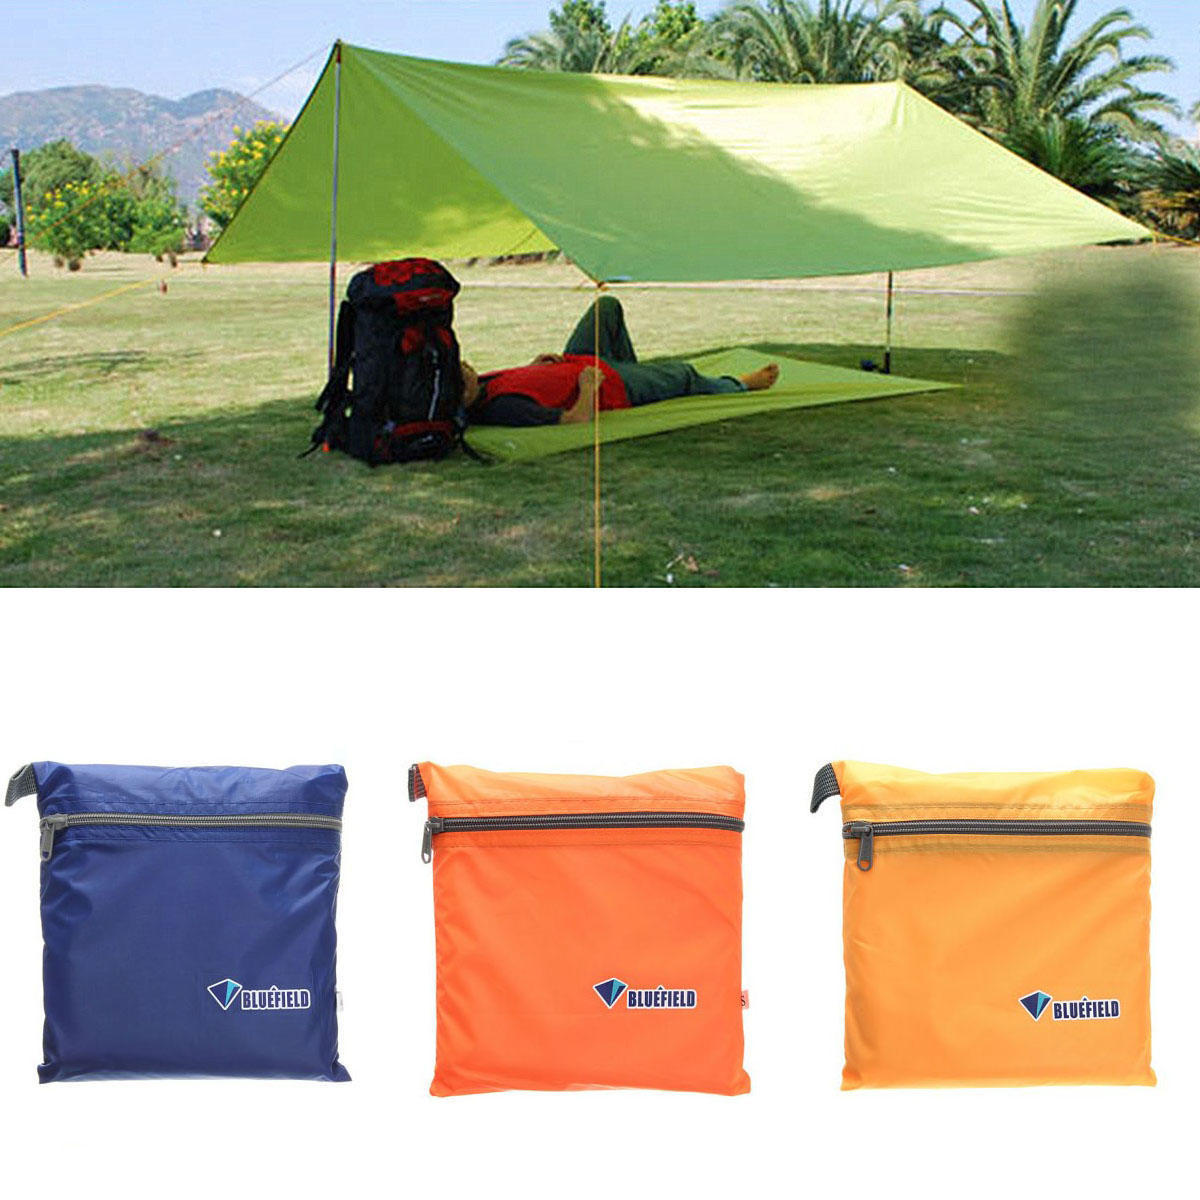 Portable Sunshade